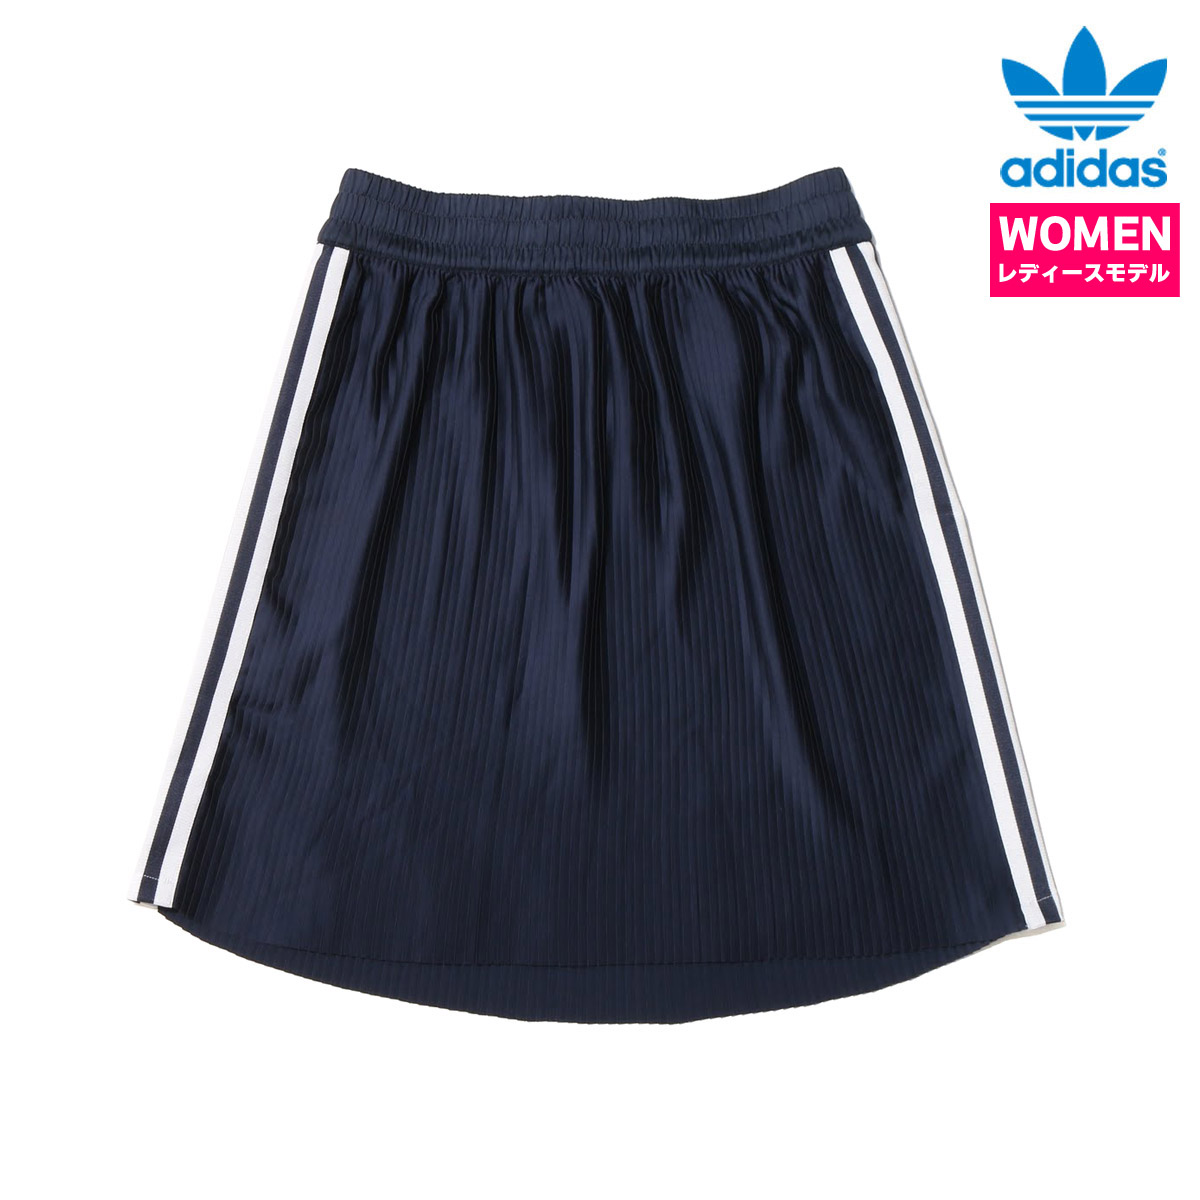 adidas Originals 3 STRIPES SKIRT (Adidas 3 stripe skirt) (Legend Ink) 17SS-I